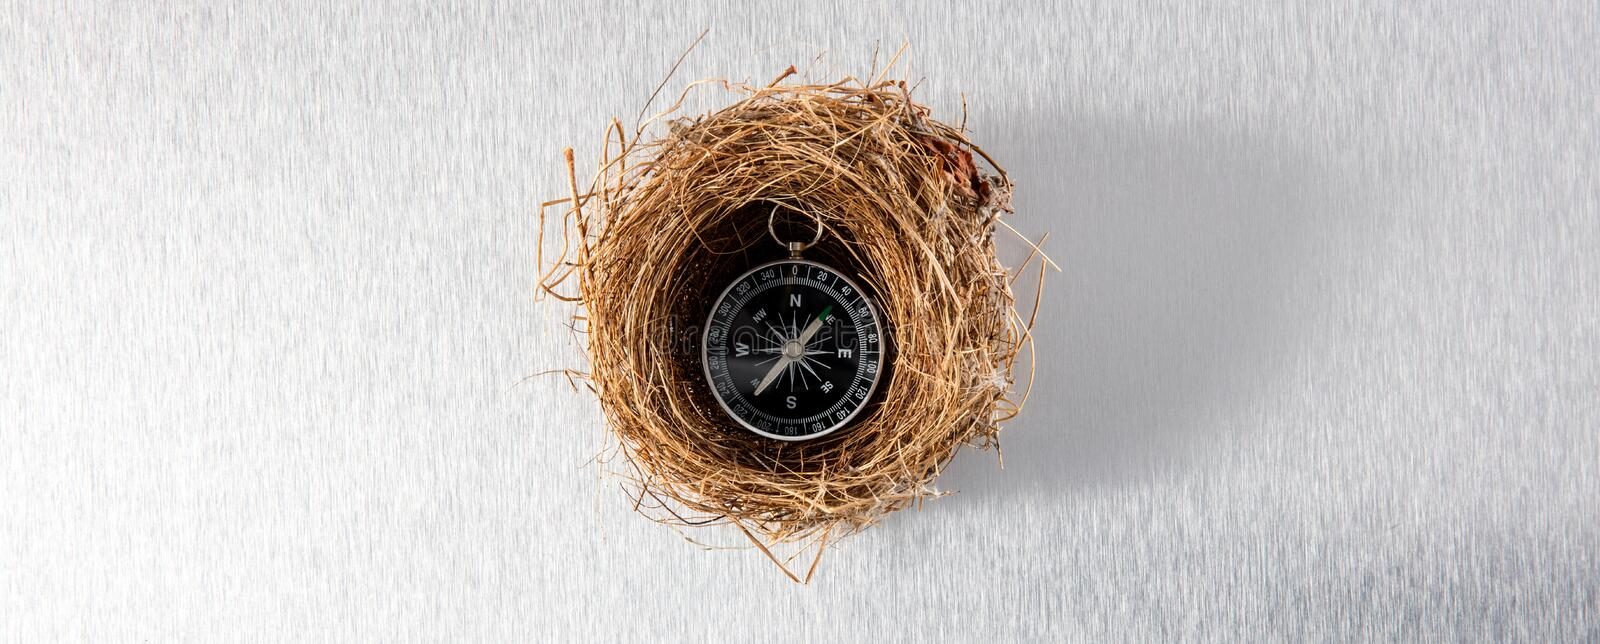 Compass in comfortable nest for safe travel or insured adventure stock photos